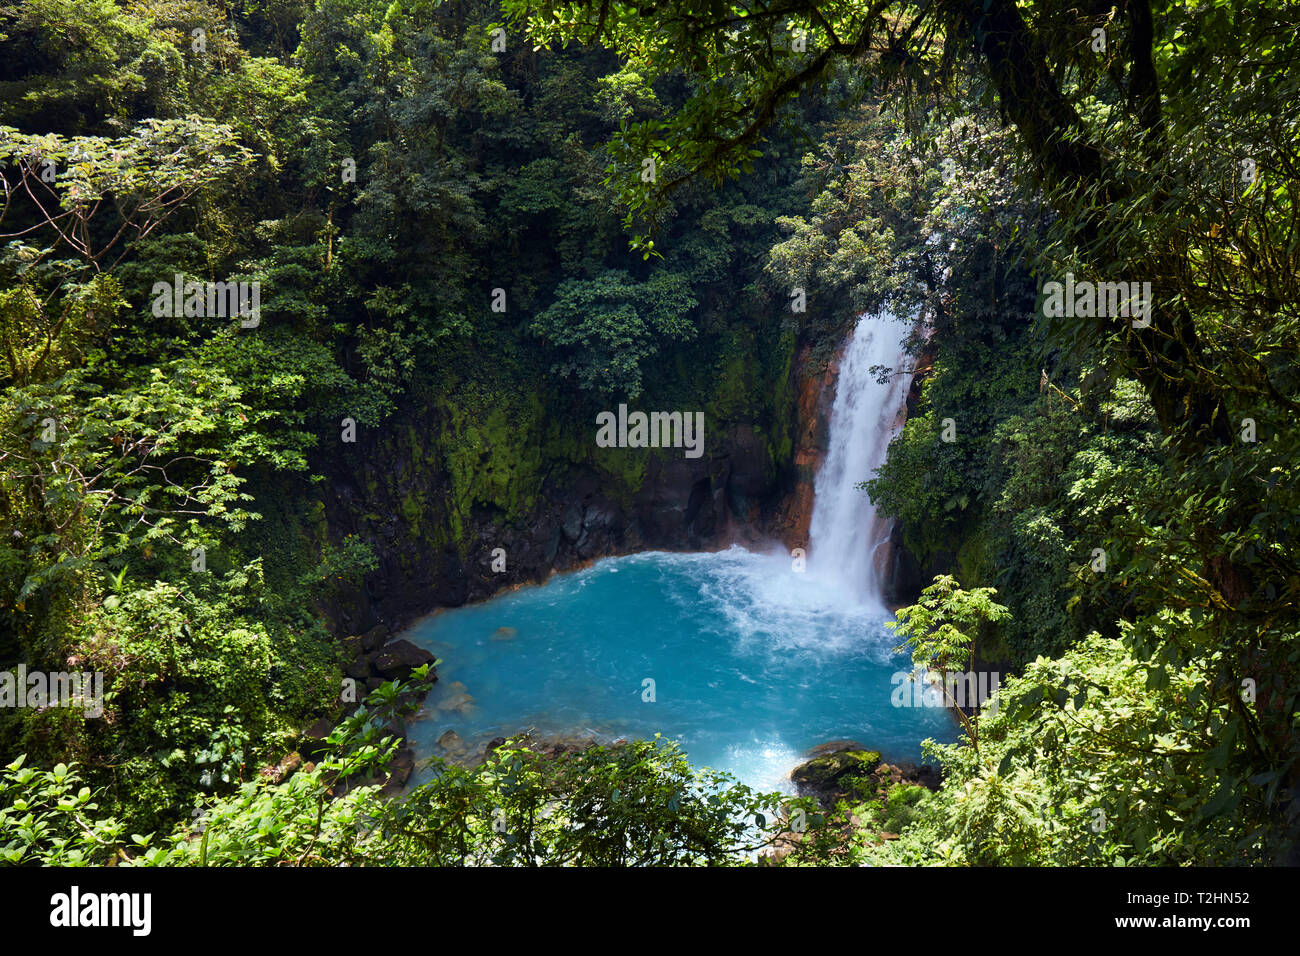 Rio Celeste in the Tenorio Volcano National Park  shows a bright blue colour like no other river due to a chemical reaction, Tenorio, Costa Rica - Stock Image